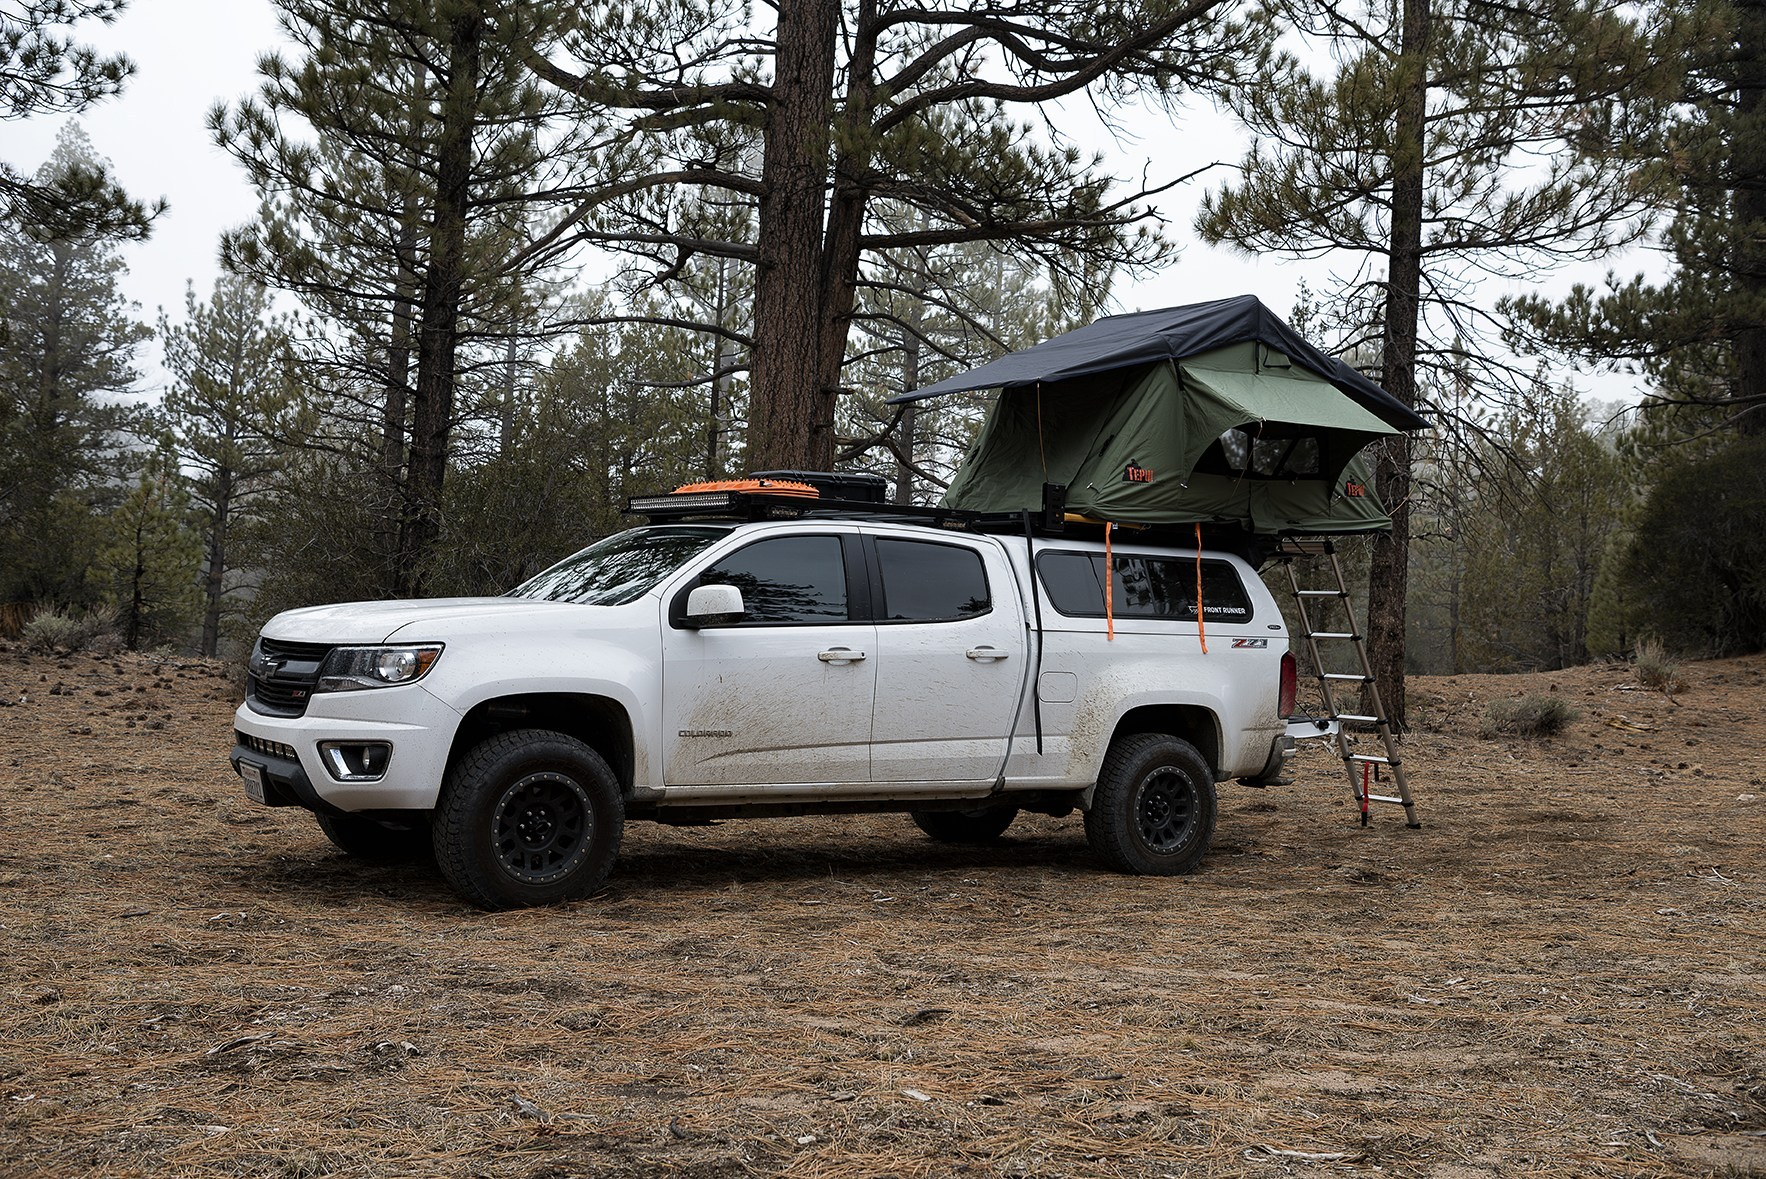 5 Great Places in California to Get Into Overlanding